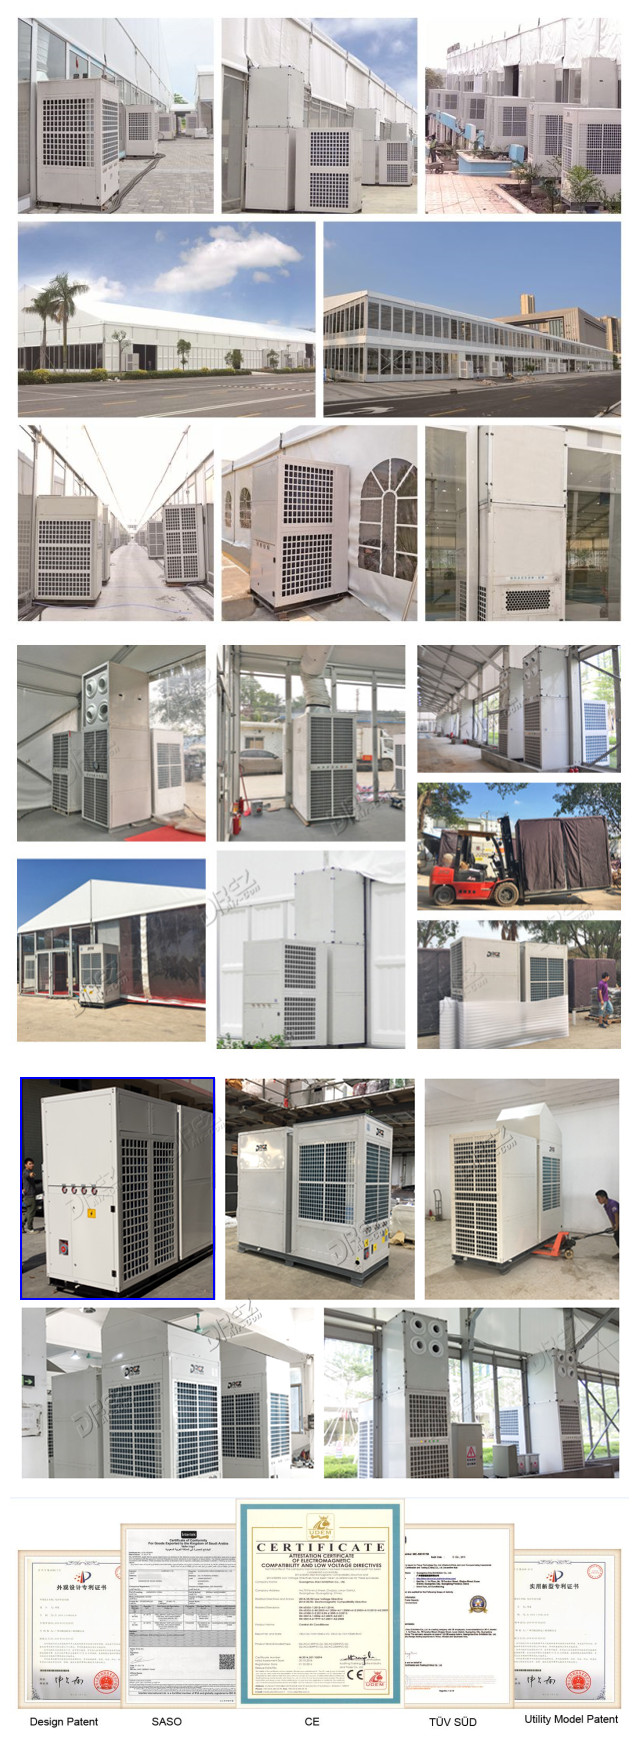 10hp 9 Ton High Efficient 108000btu Wedding Tent Air Conditioner Portable Air Cooled for Outdoor Event Tent Cooling